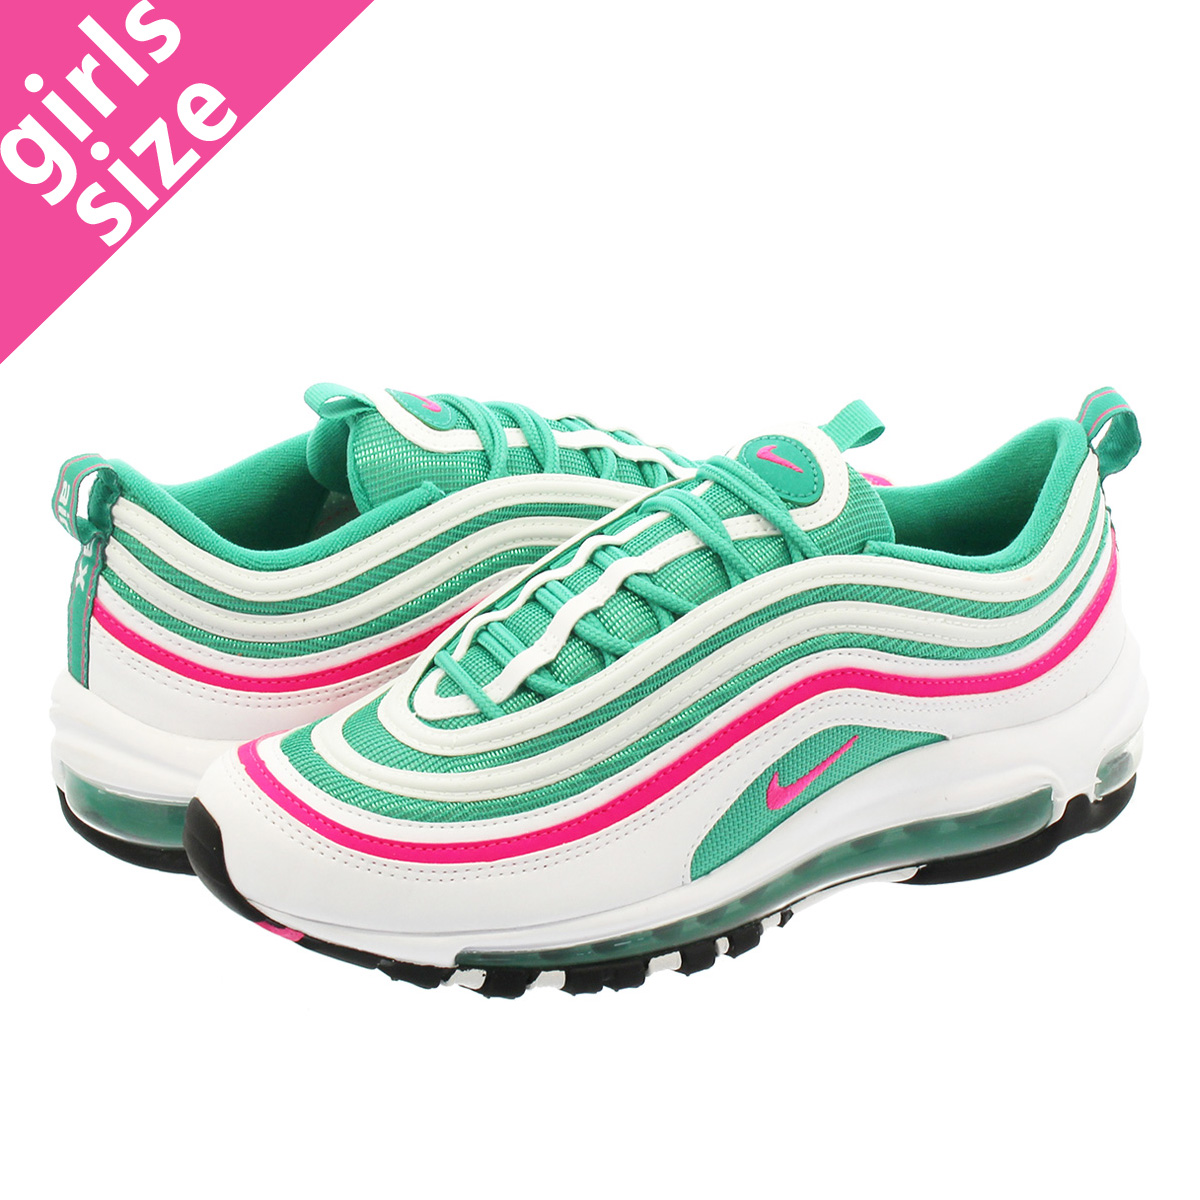 Air Max nike Women's Shoes Shoes White 60items